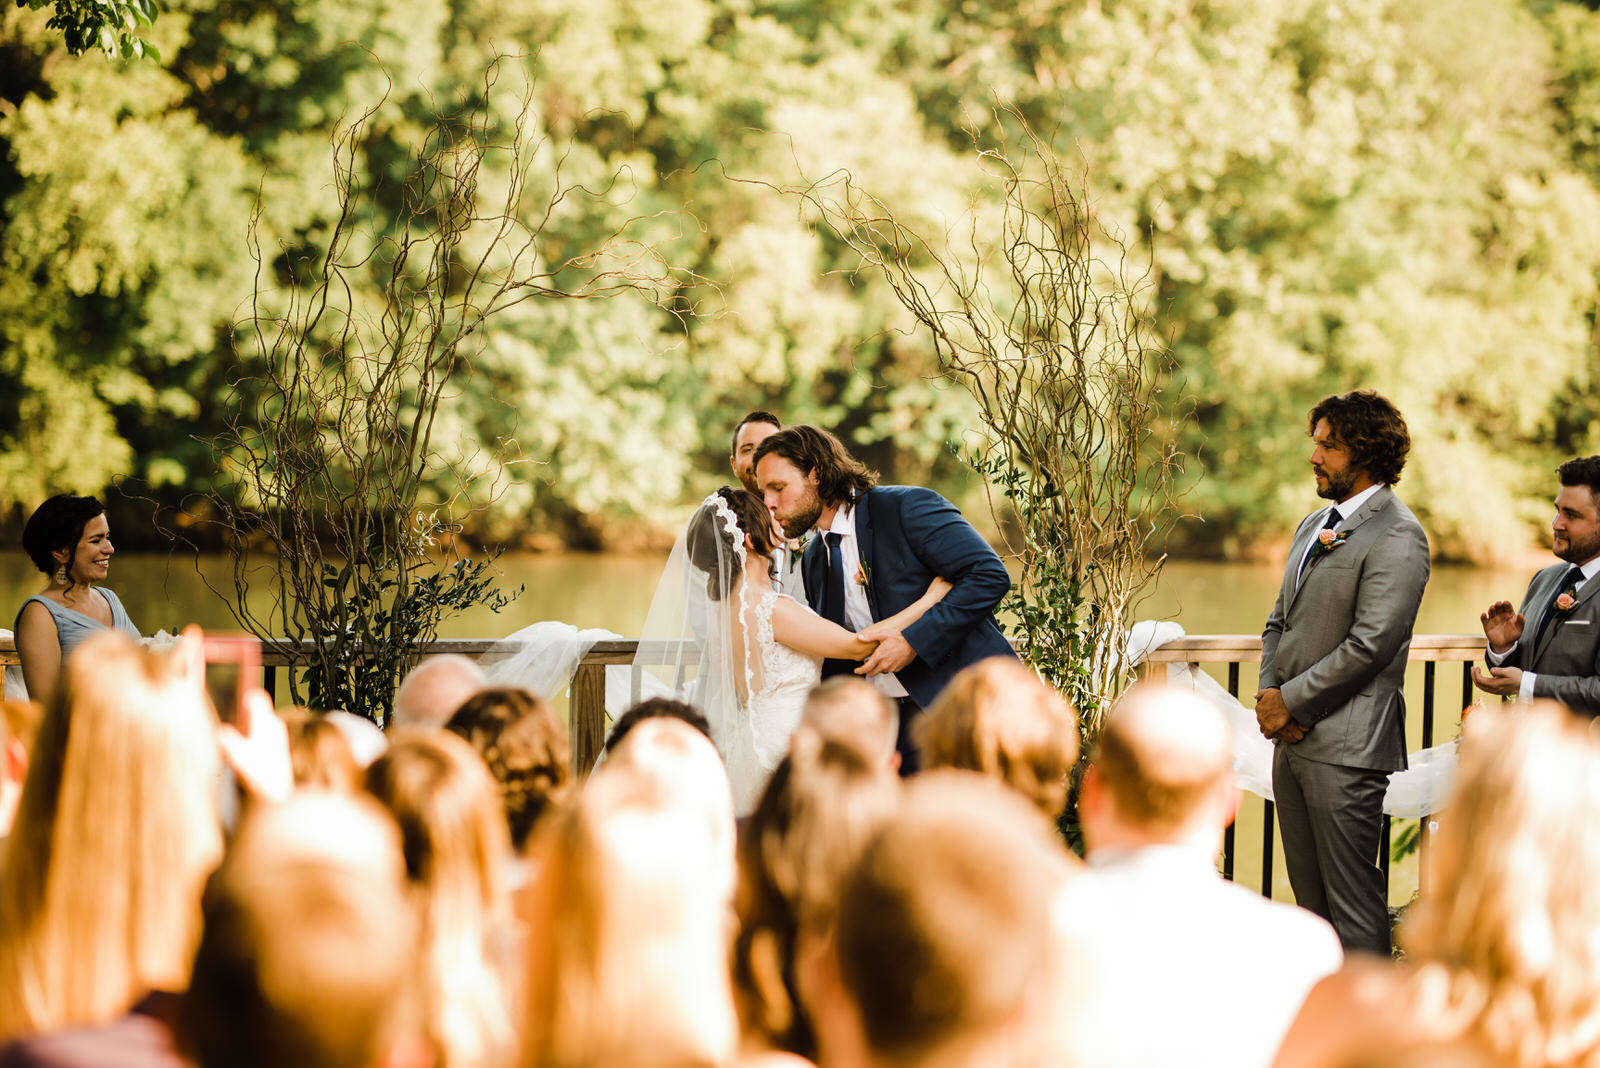 First Kiss at Roswell River Landing Wedding Ceremony